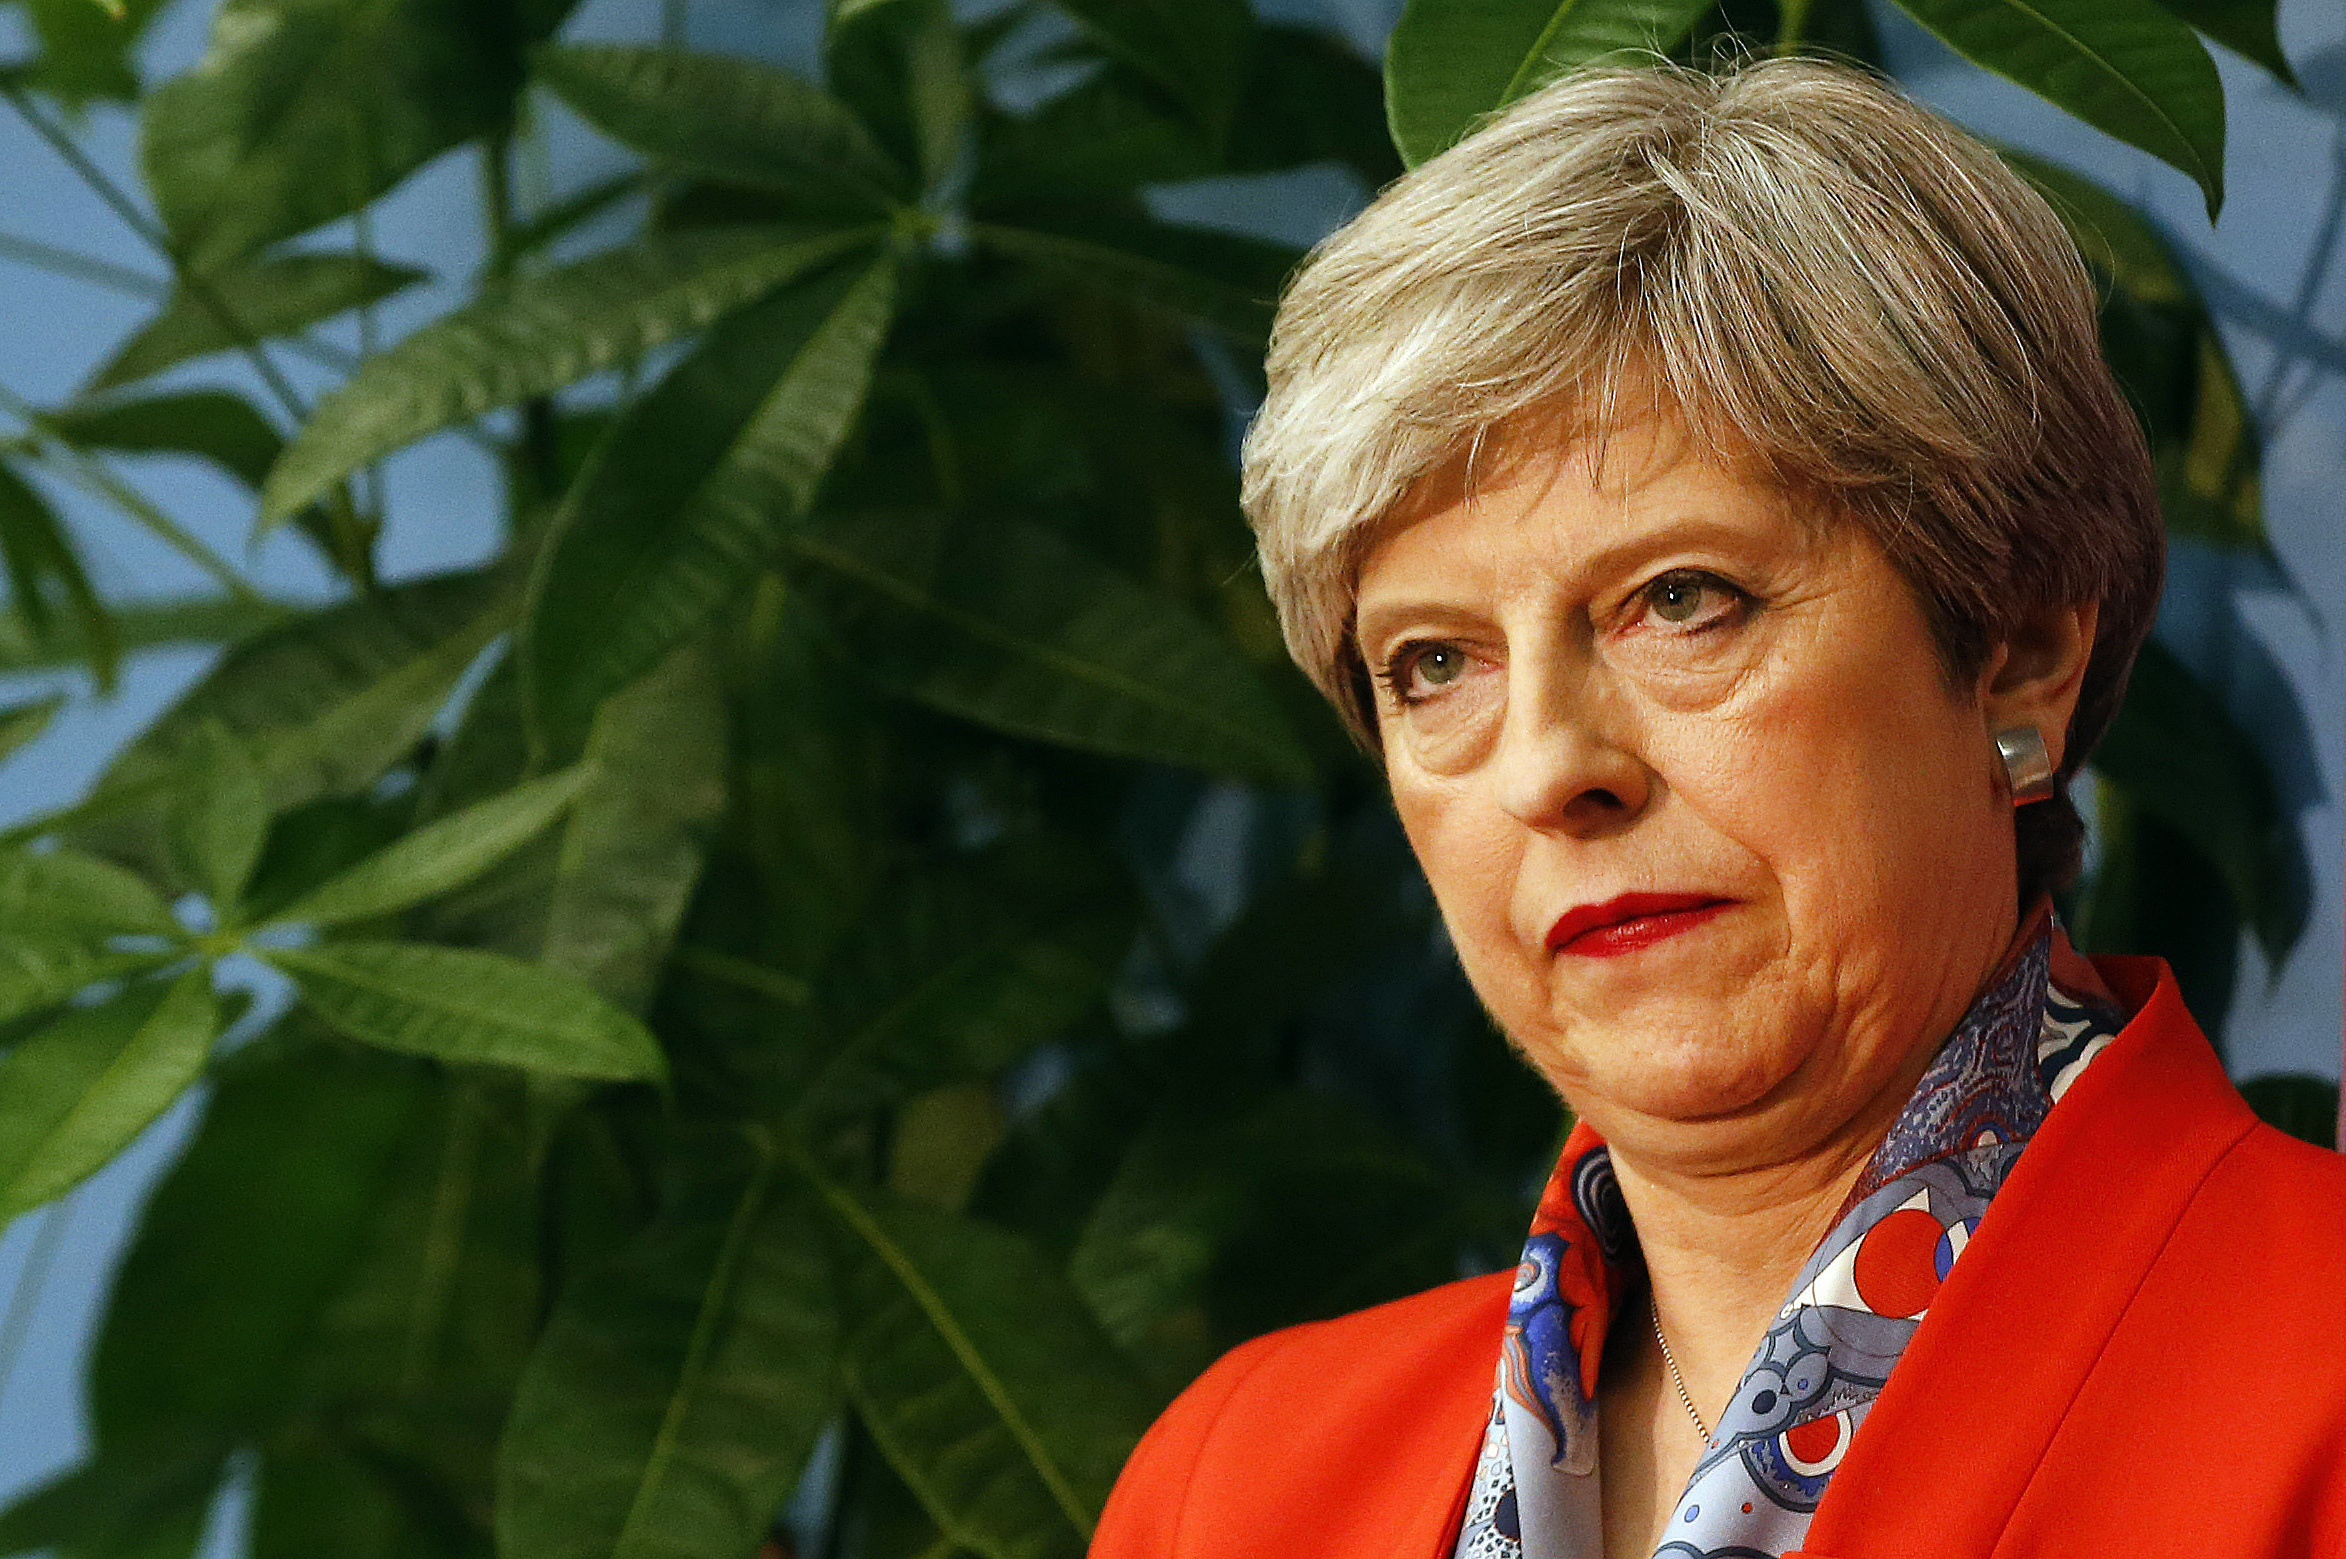 Britain's Prime Minister Theresa May listens as the declaration at her constituency is made for in the general election in Maidenhead, England, Friday, June 9, 2017. British Prime Minister Theresa May's gamble in calling an early election appeared Friday to have backfired spectacularly, after an exit poll suggested her Conservative Party could lose its majority in